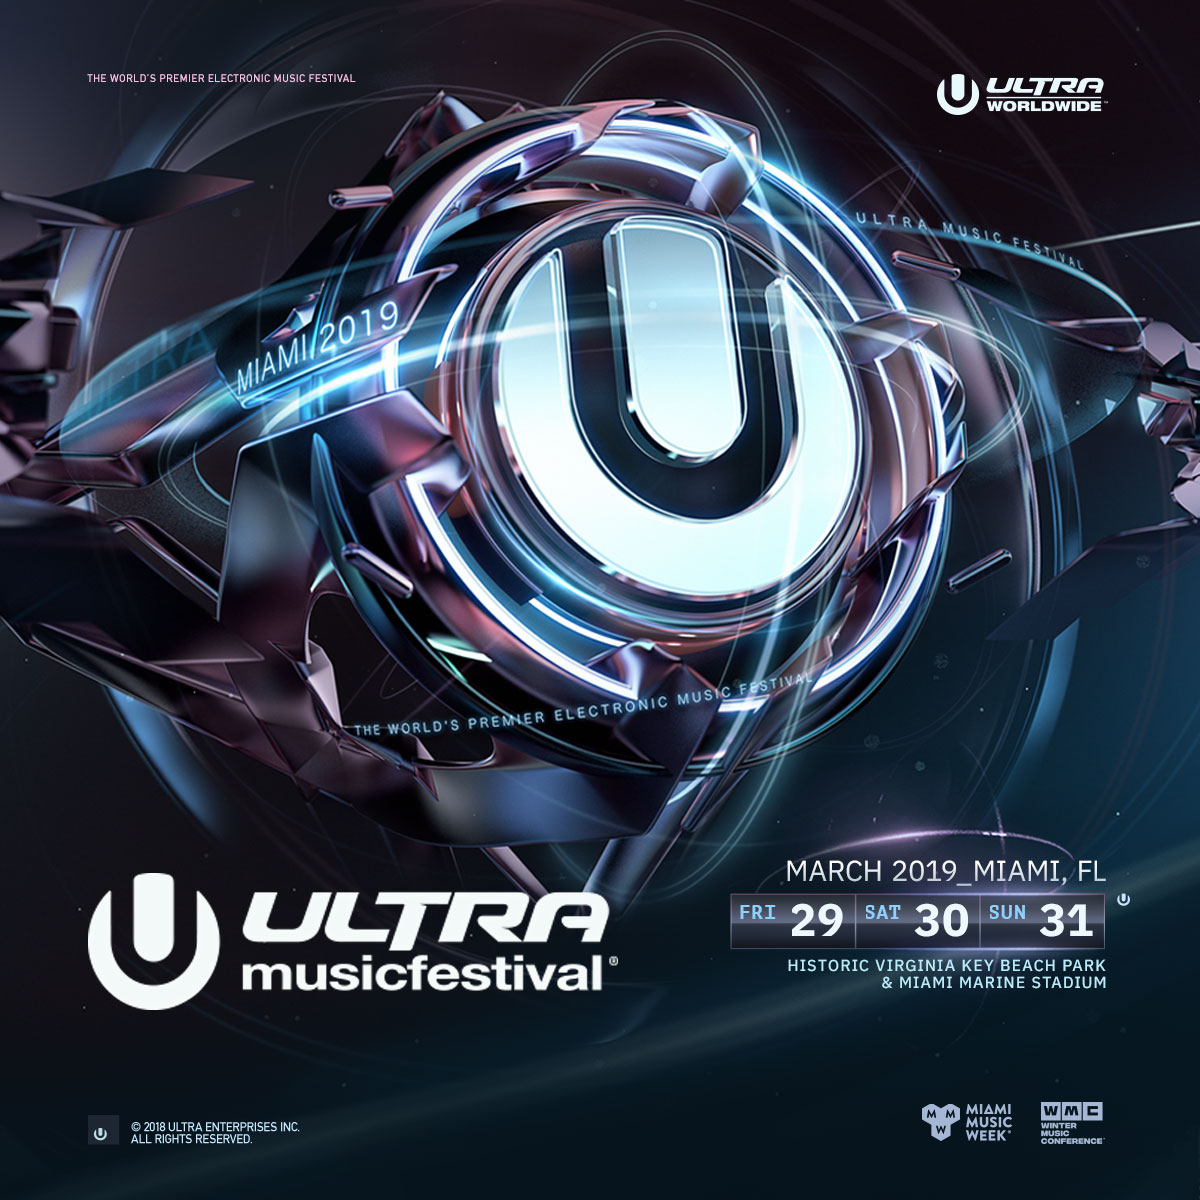 Ultra Music Festival - Day 1 Image